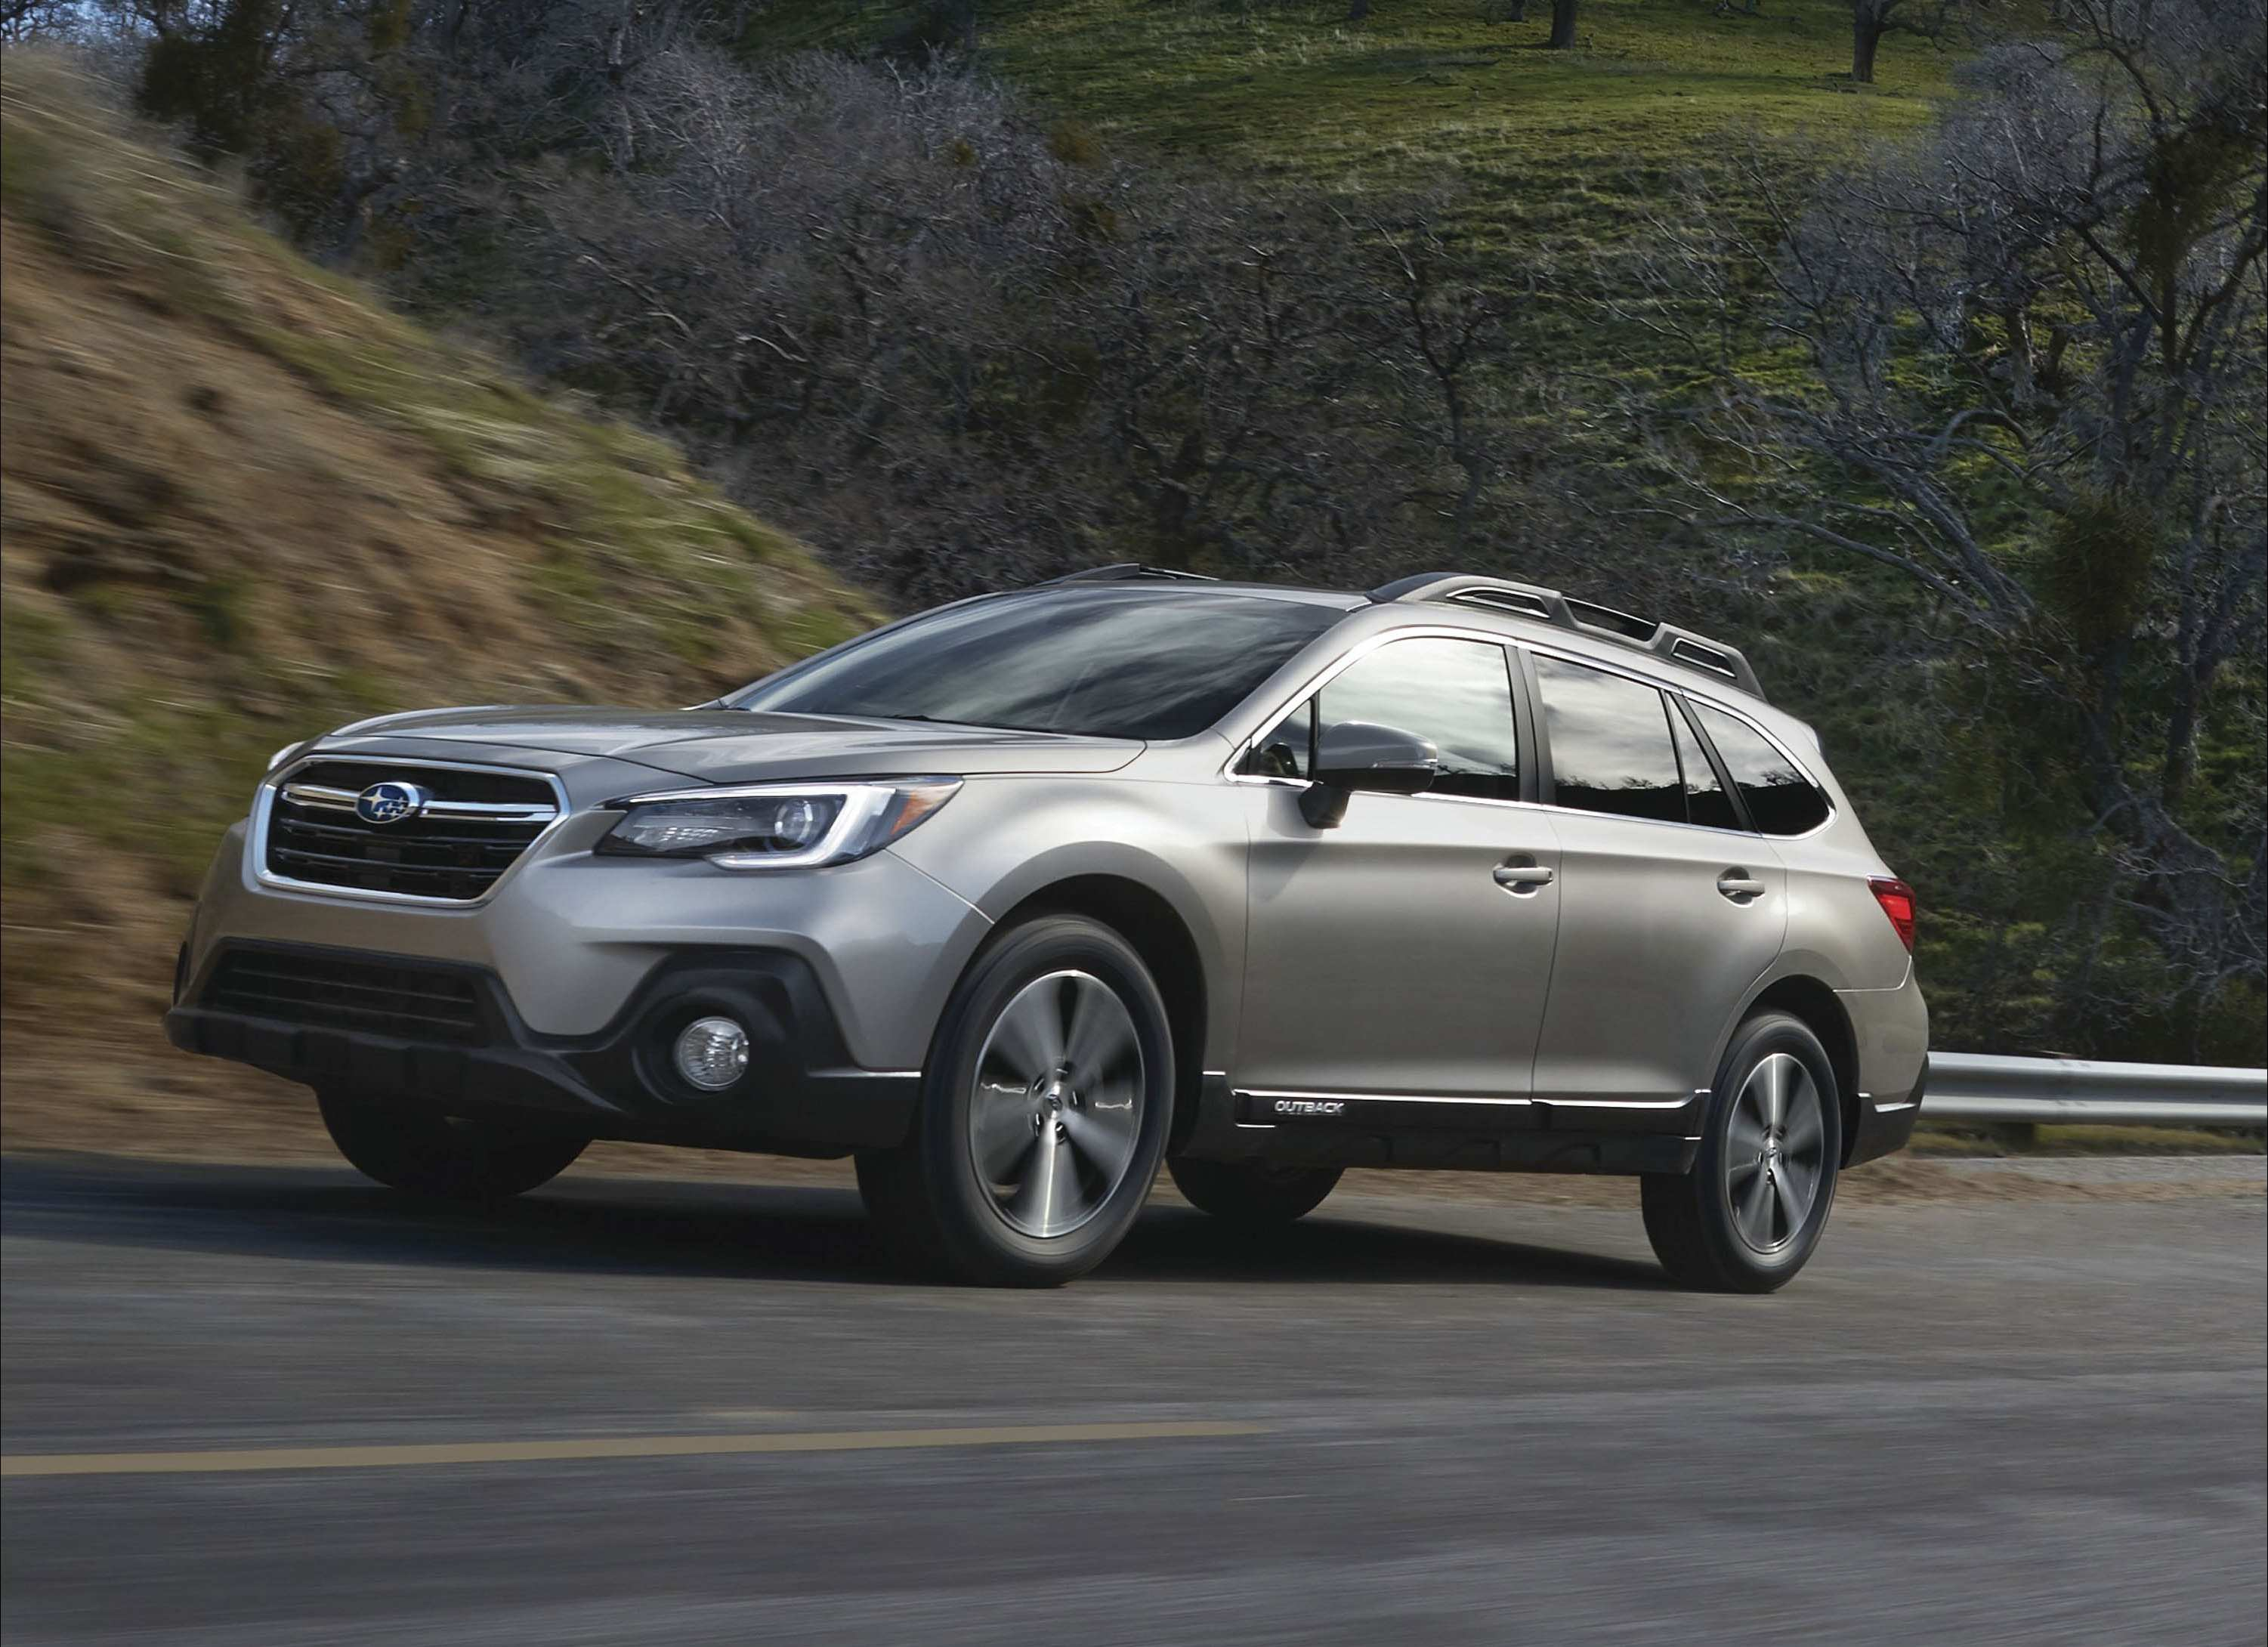 84 Great New Generation 2020 Subaru Outback Reviews for New Generation 2020 Subaru Outback